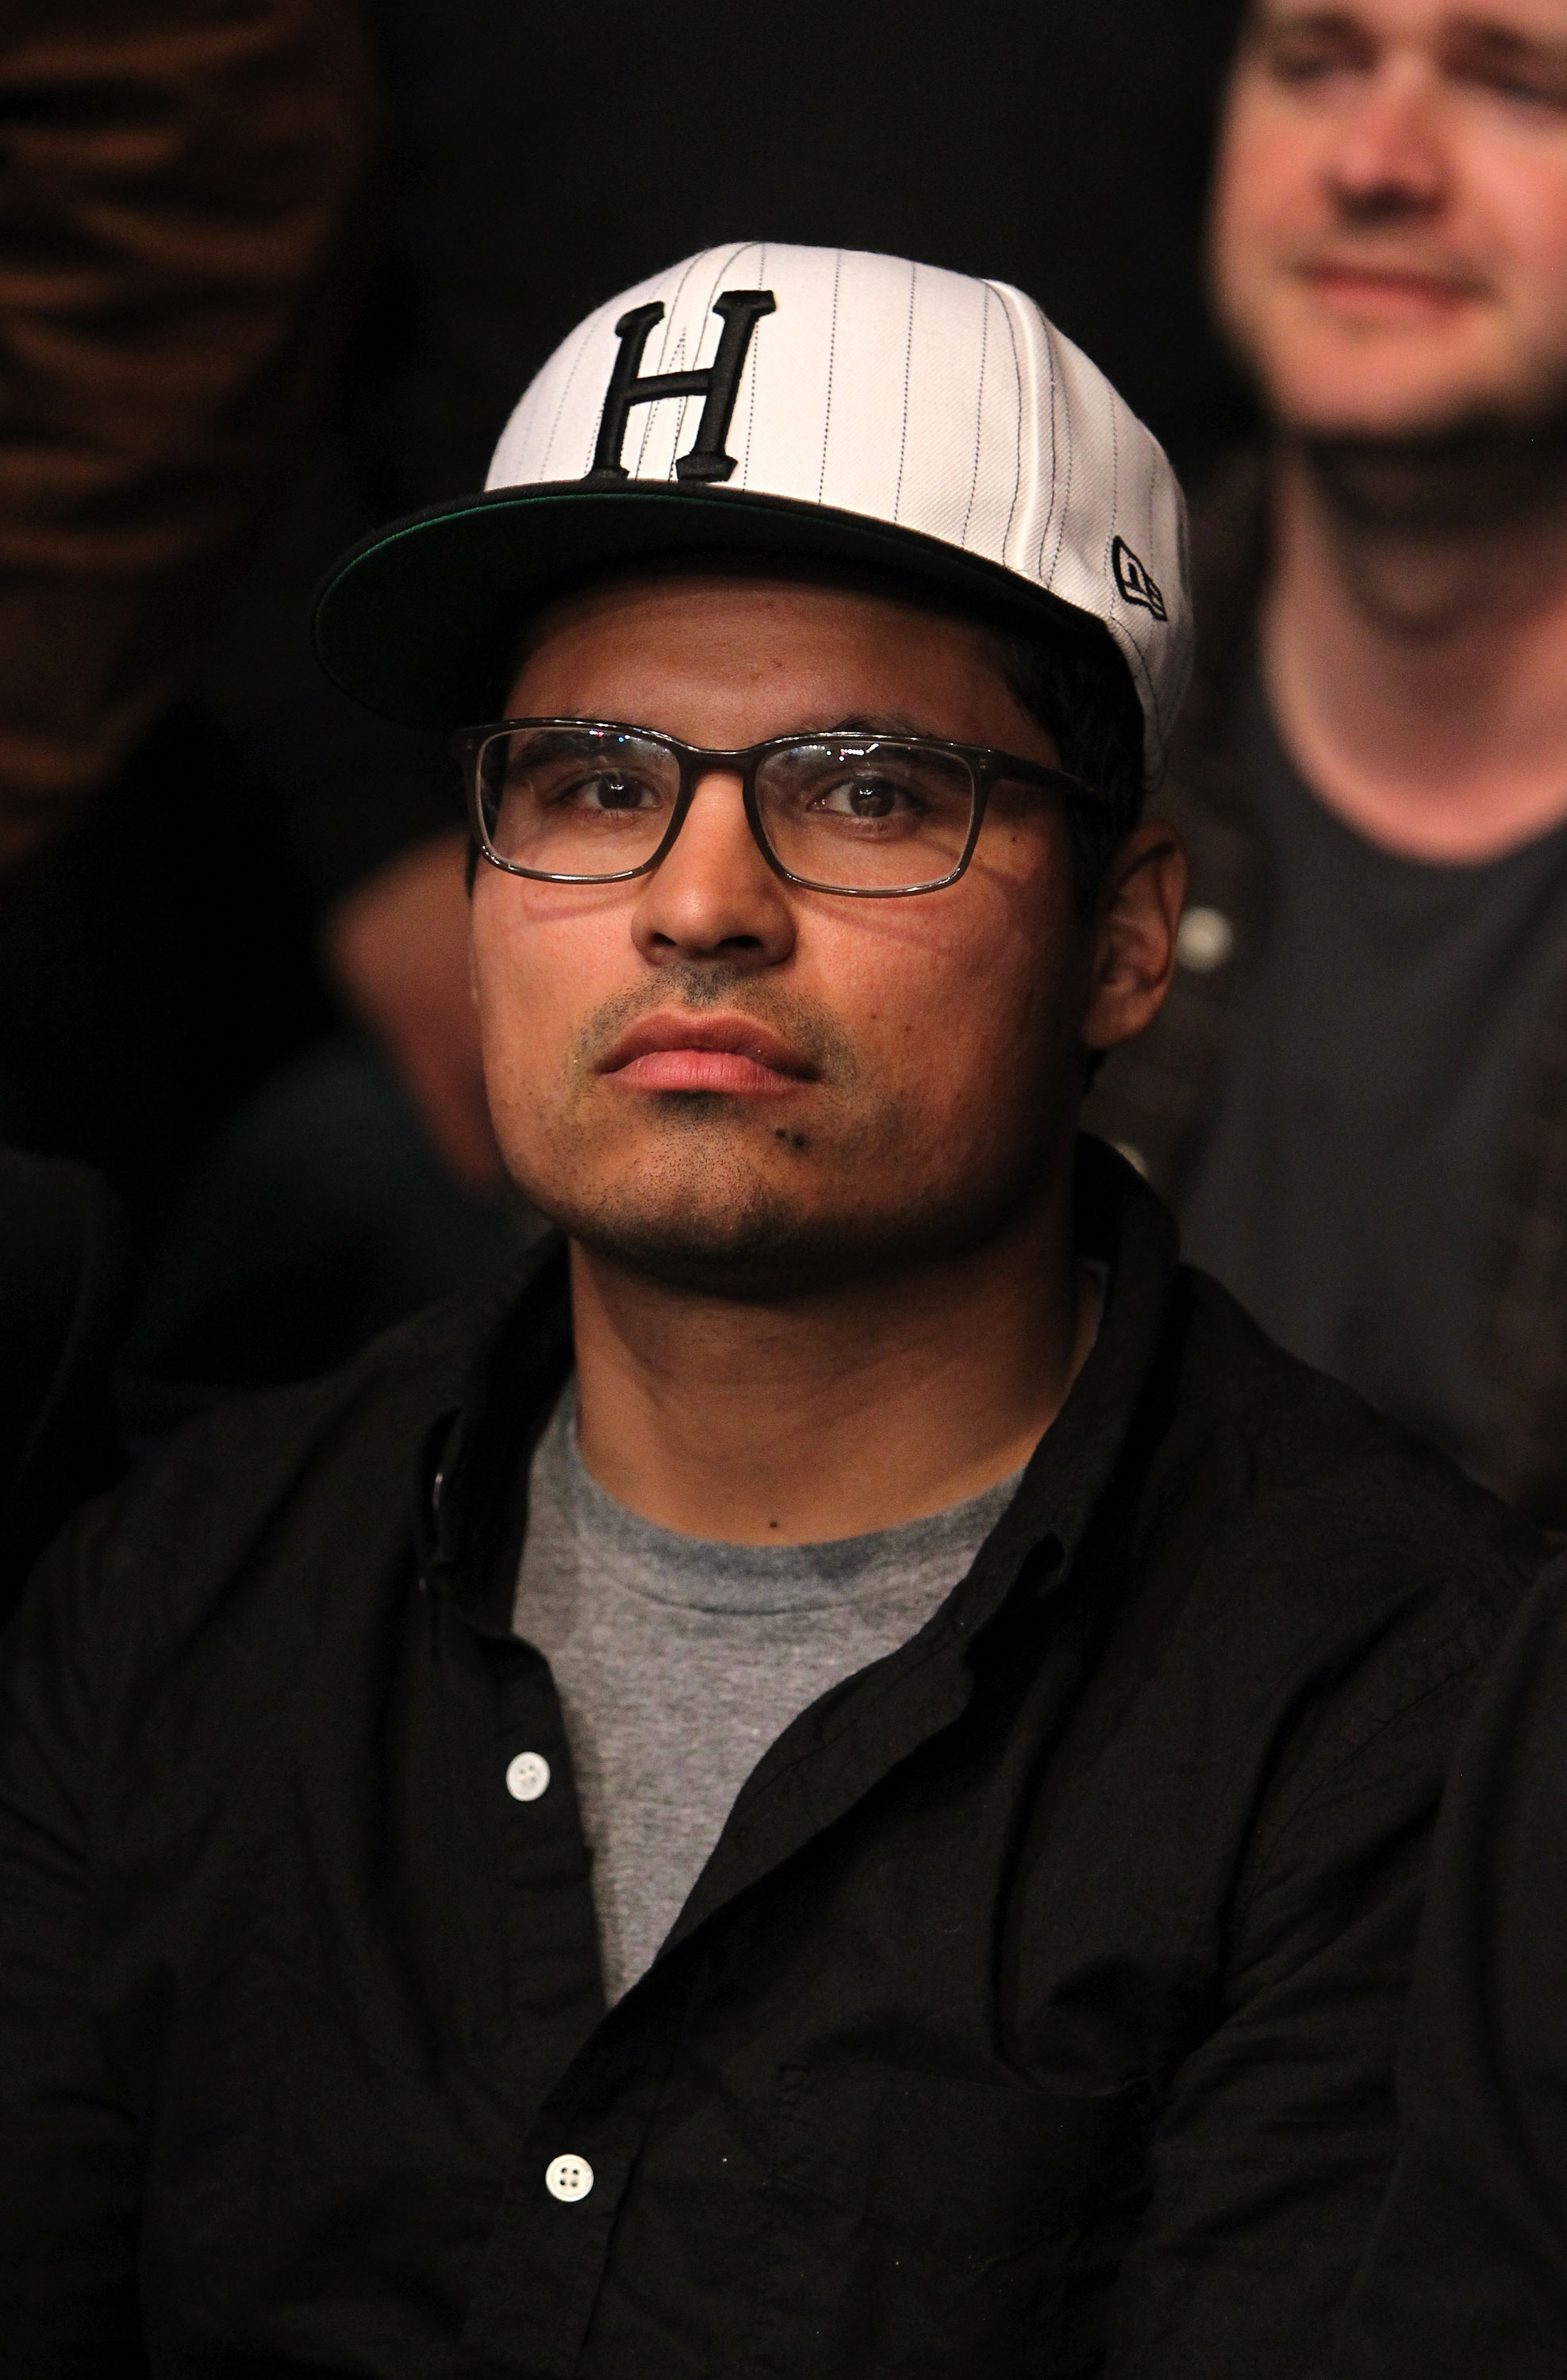 LAS VEGAS, NV - DECEMBER 30:  Michael Pena in attendance during the UFC 141 event at the MGM Grand Garden Arena on December 30, 2011 in Las Vegas, Nevada.  (Photo by Josh Hedges/Zuffa LLC/Zuffa LLC via Getty Images) *** Local Caption *** Michael Pena